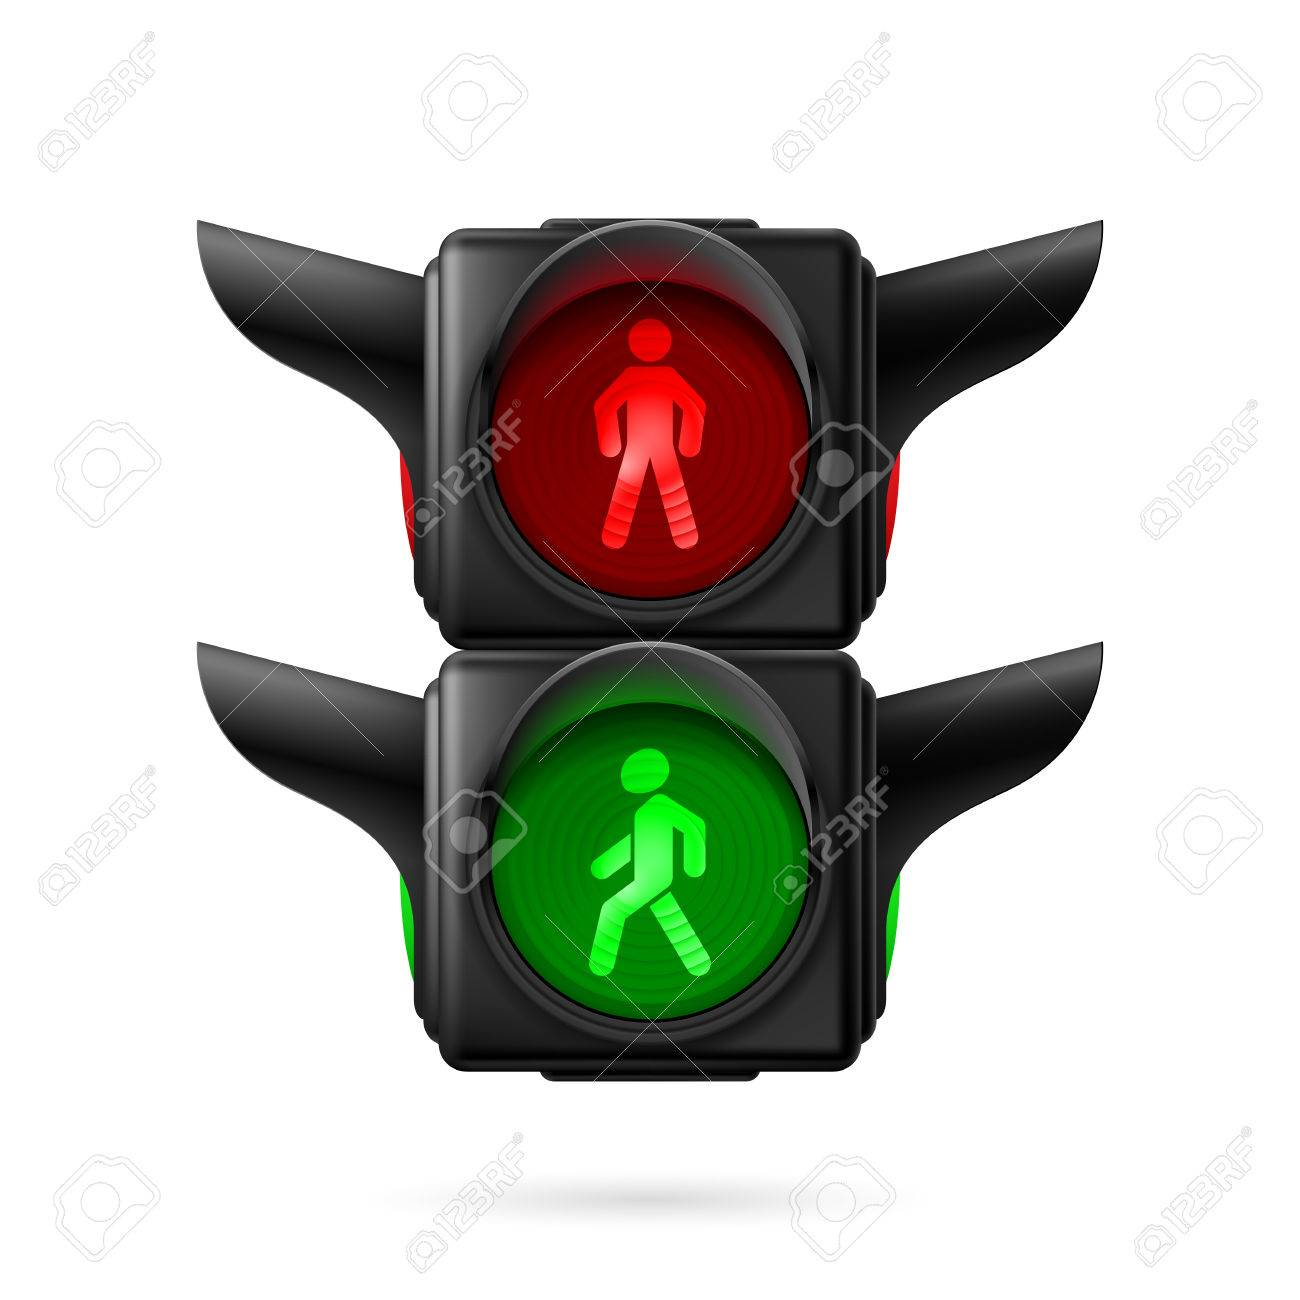 Realistic Pedestrian Traffic Lights With Red And Green Lamps On.  Illustration On White Background Stock